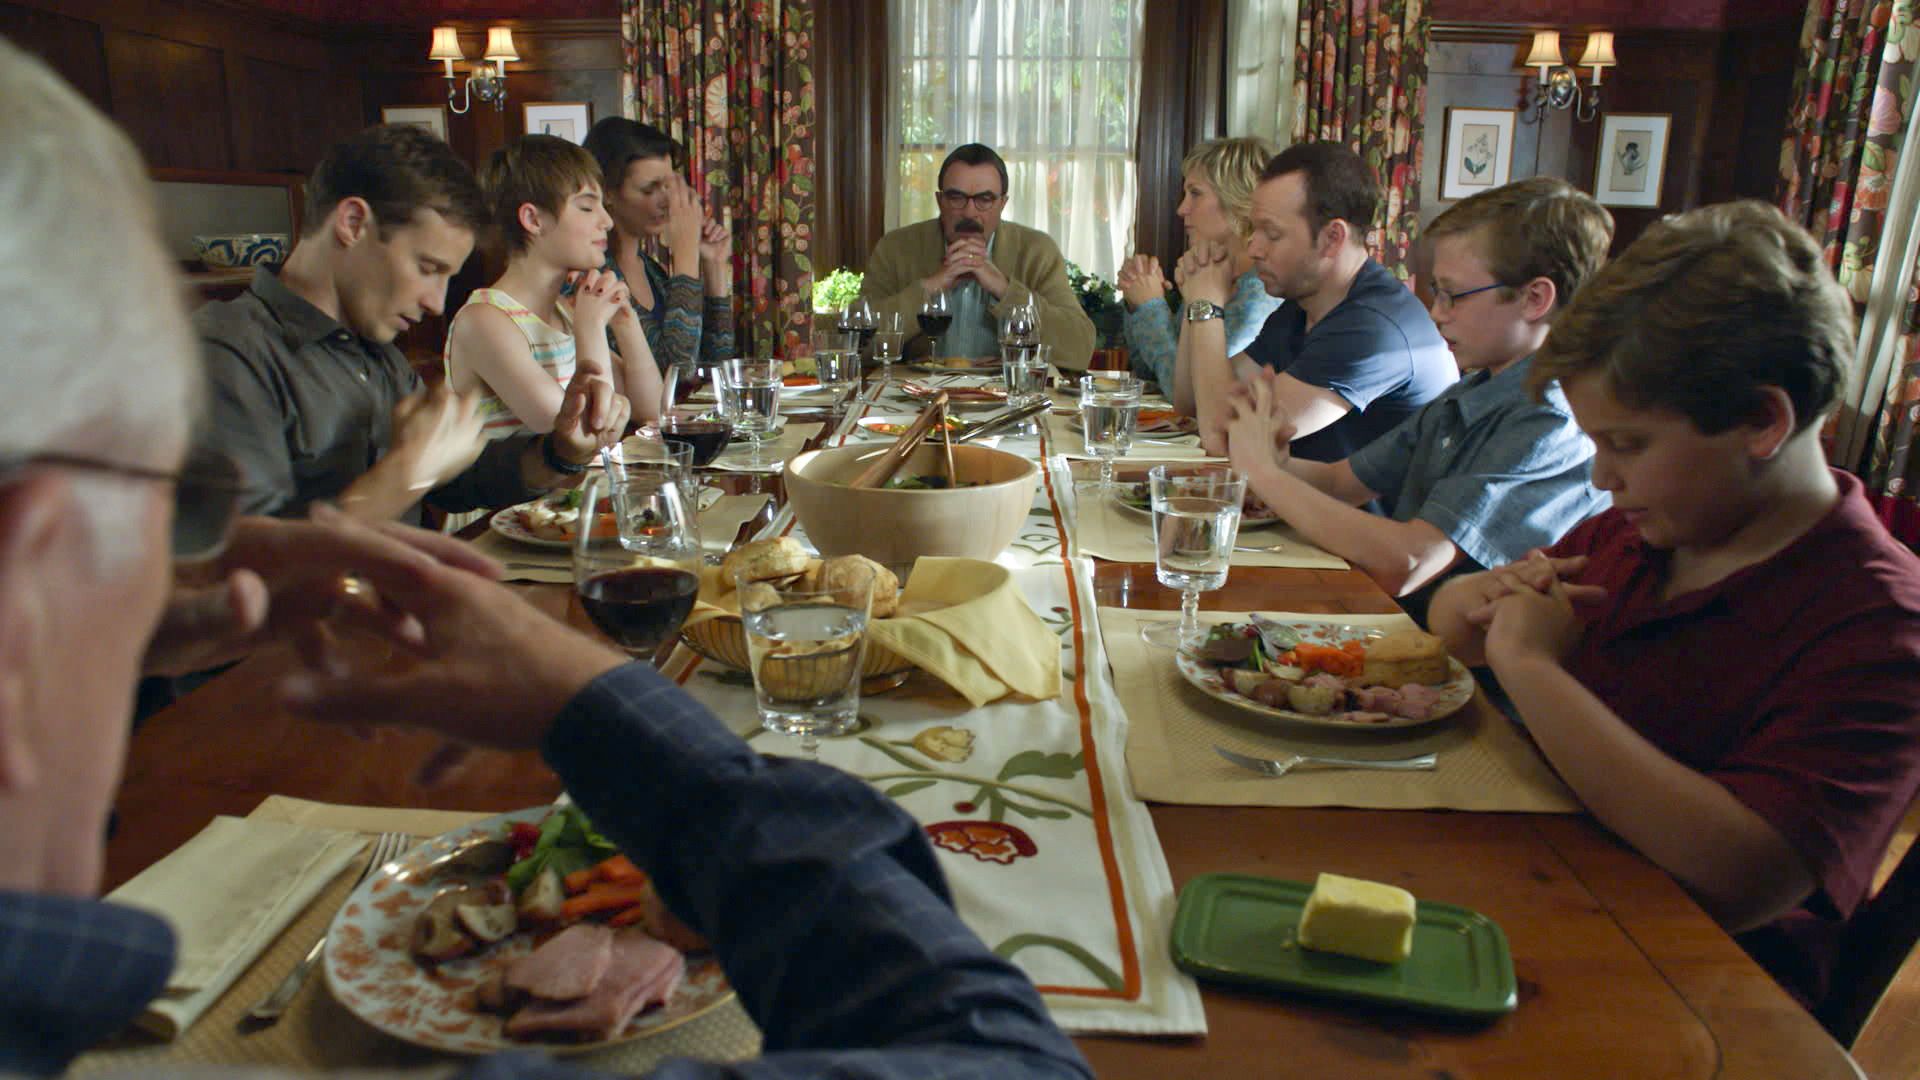 An intimate portrait of the family dinner table.